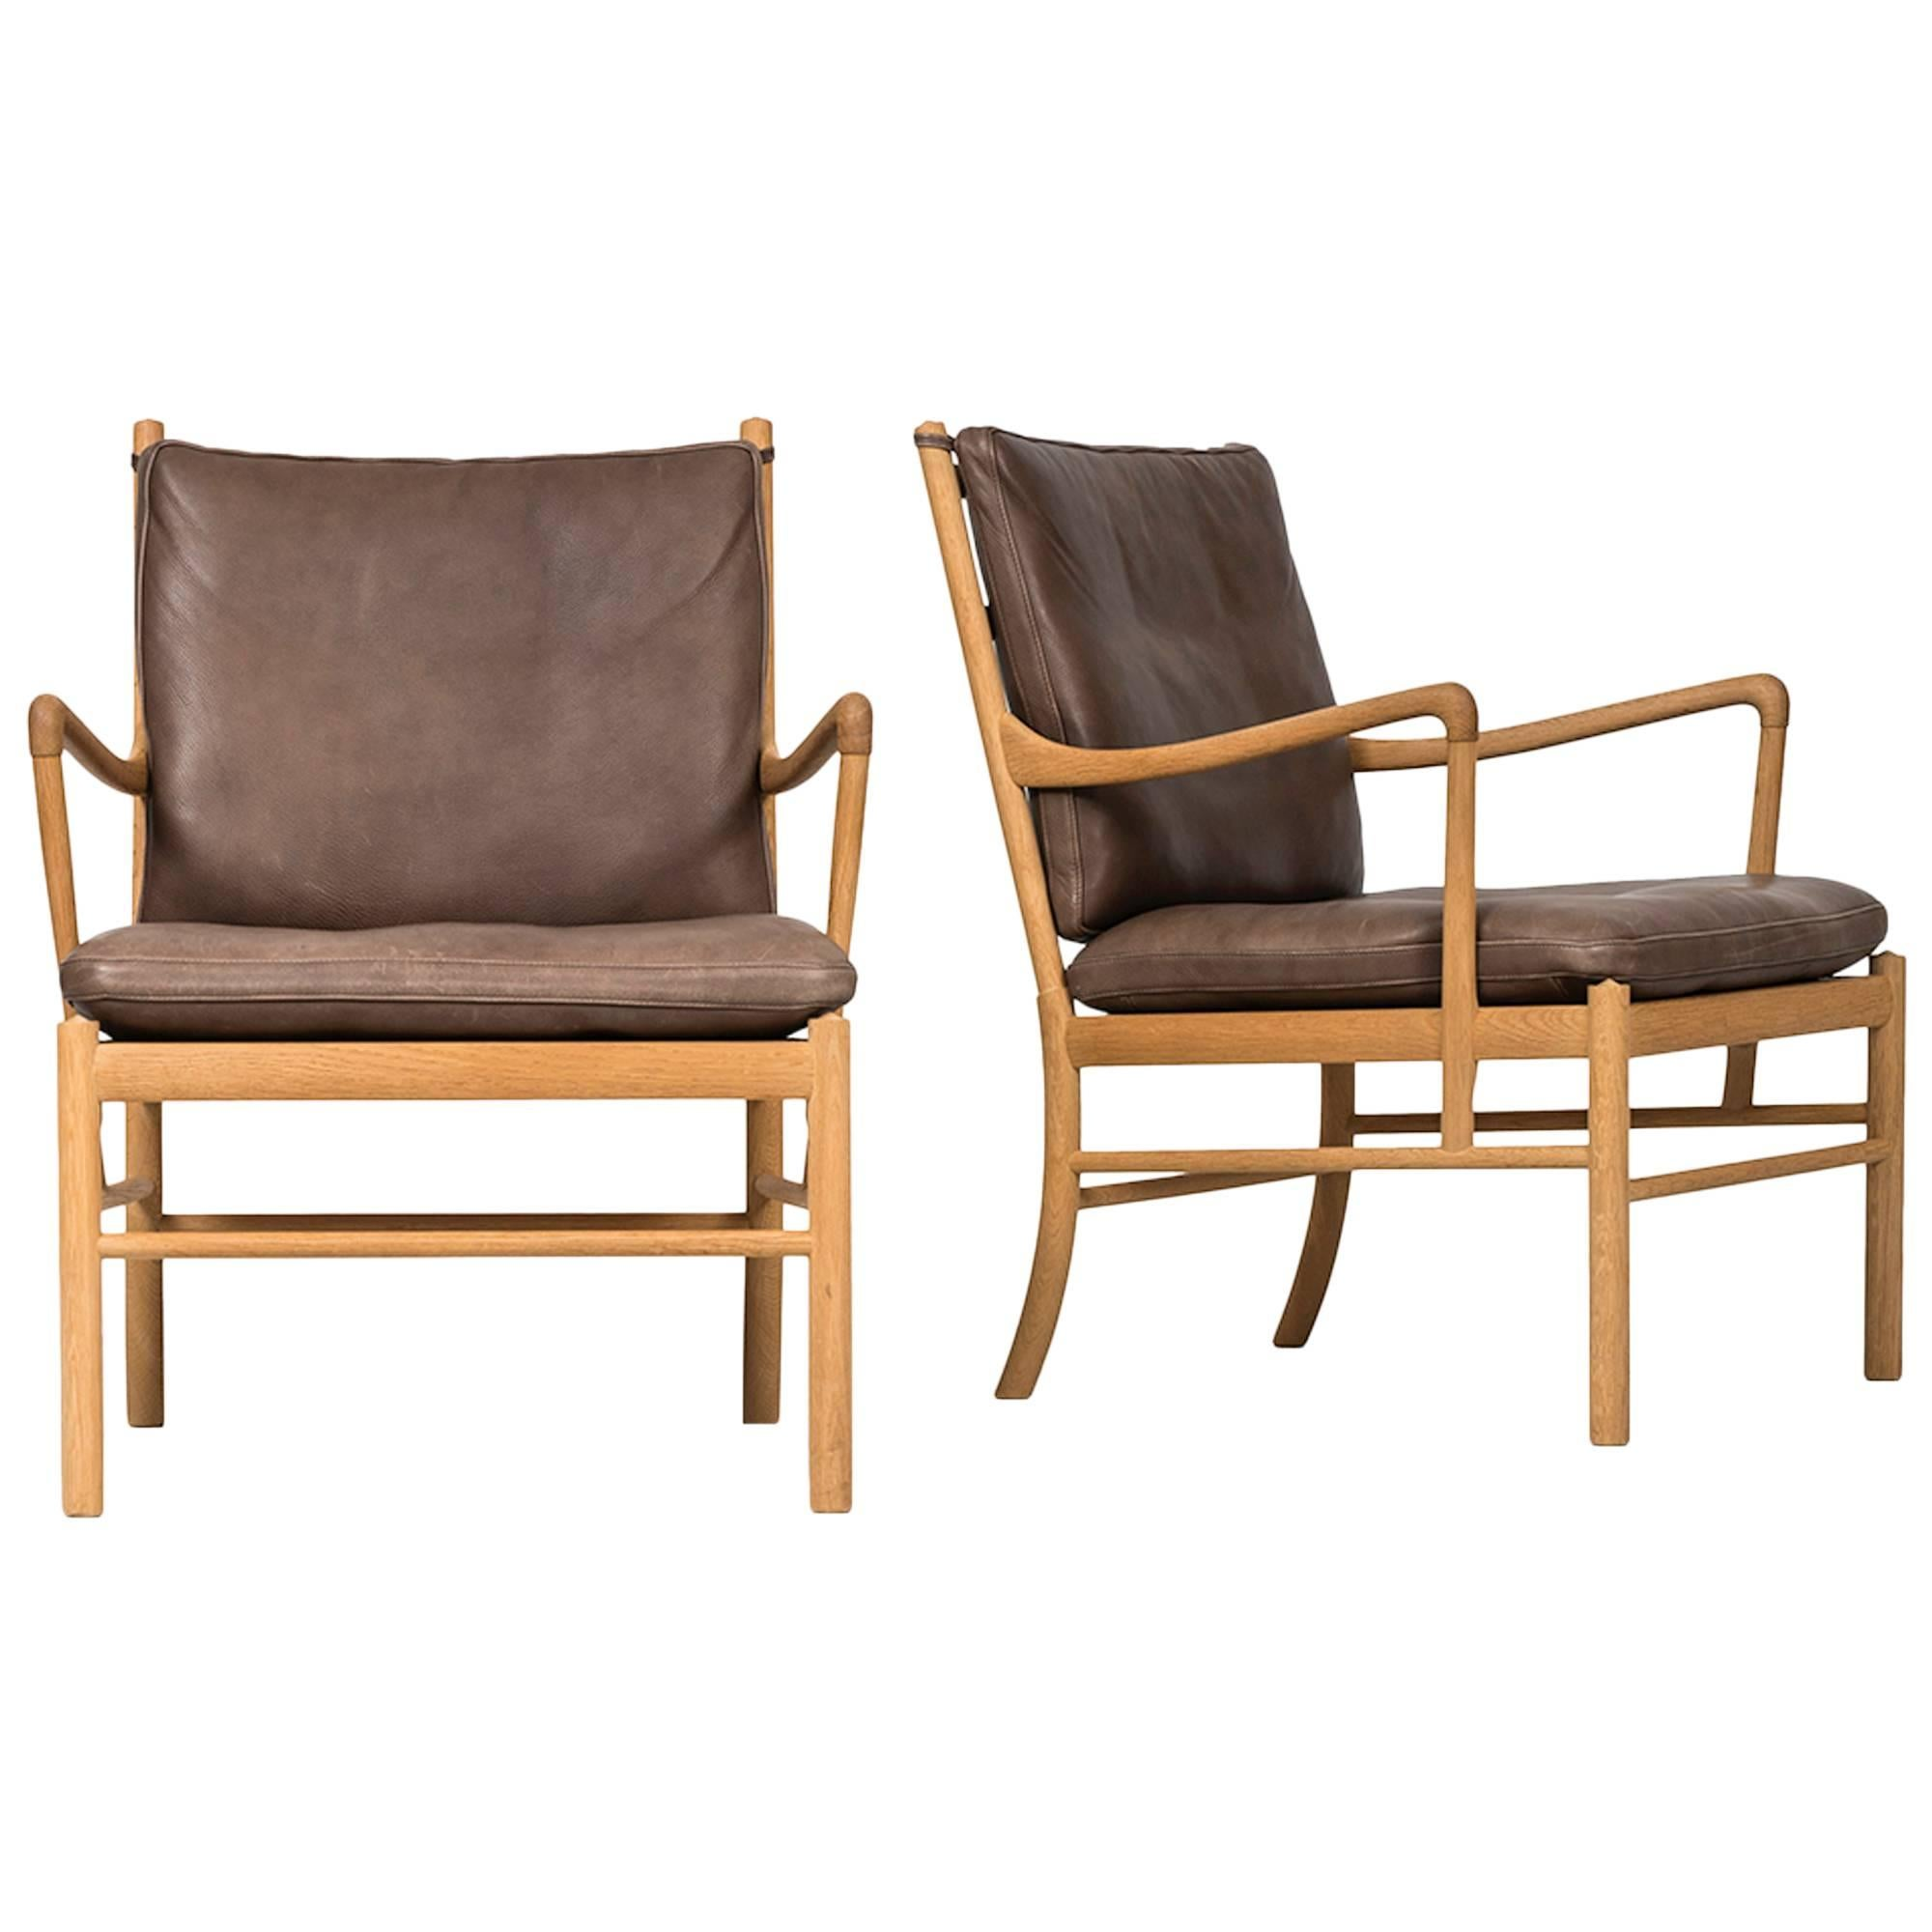 Ole Wanscher Colonial Easy Chairs By P J Furniture In Denmark At